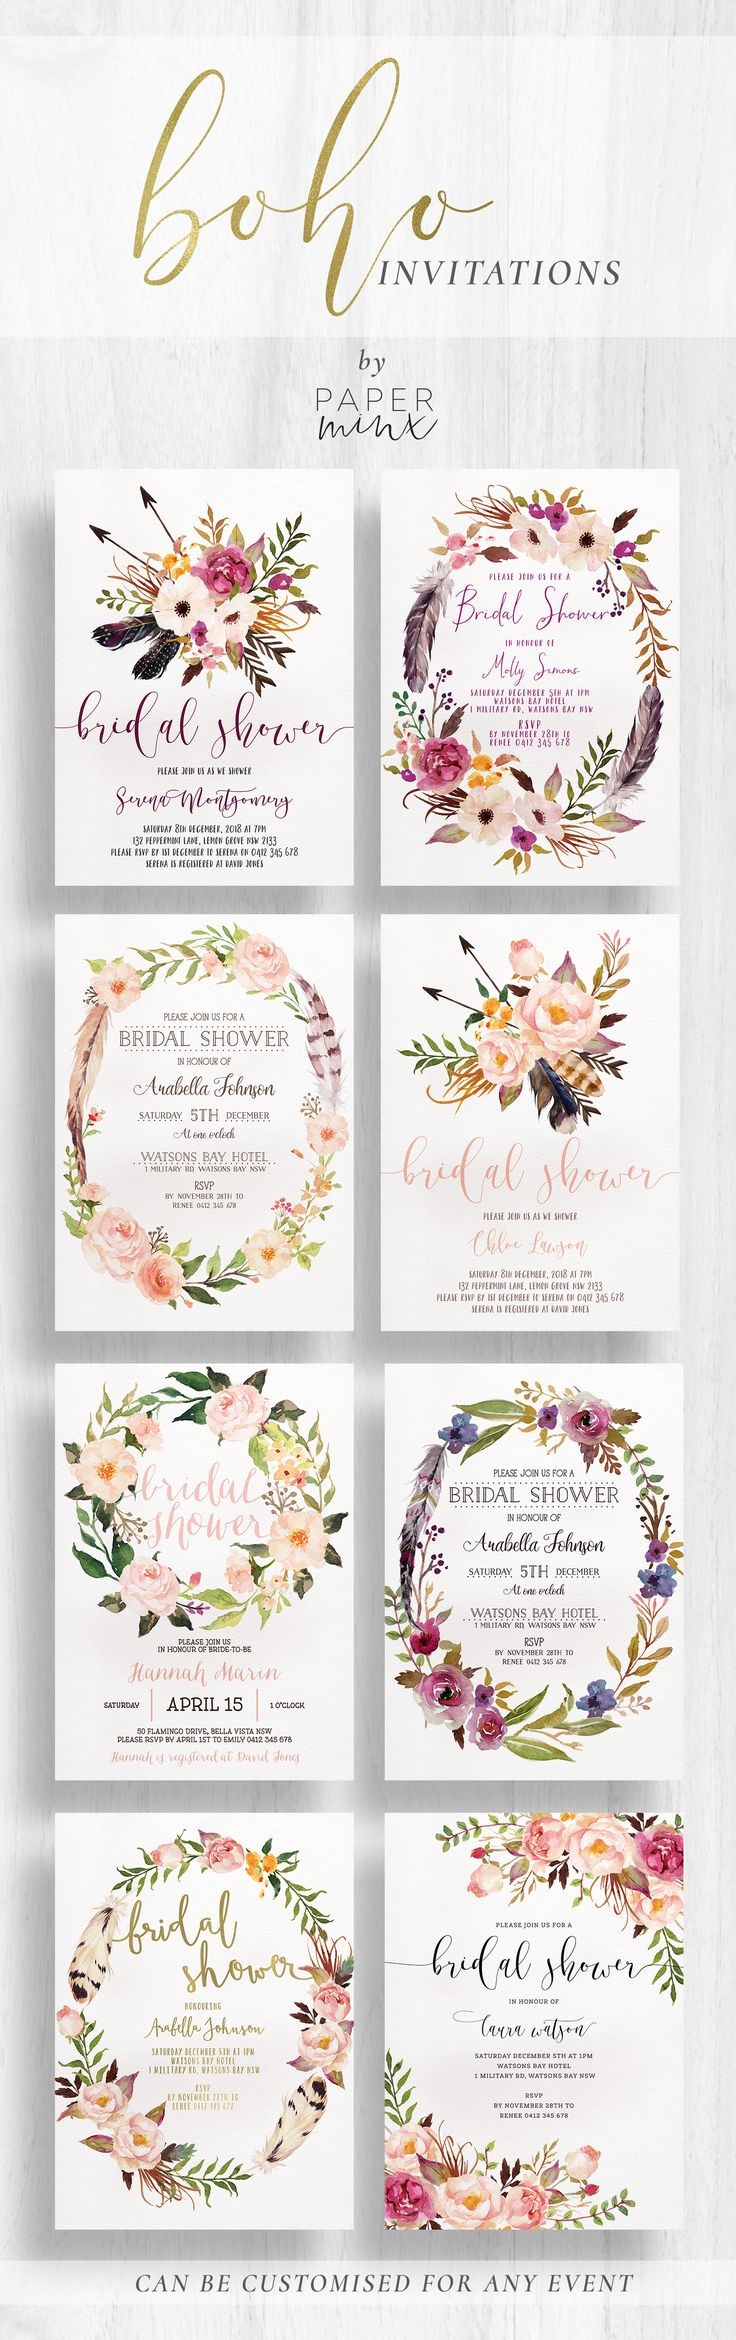 Boho Bridal Shower Invitations by Paper Minx Designs - Printed on high quality cardstock - Head over to www.paperminxdesigns.etsy.com